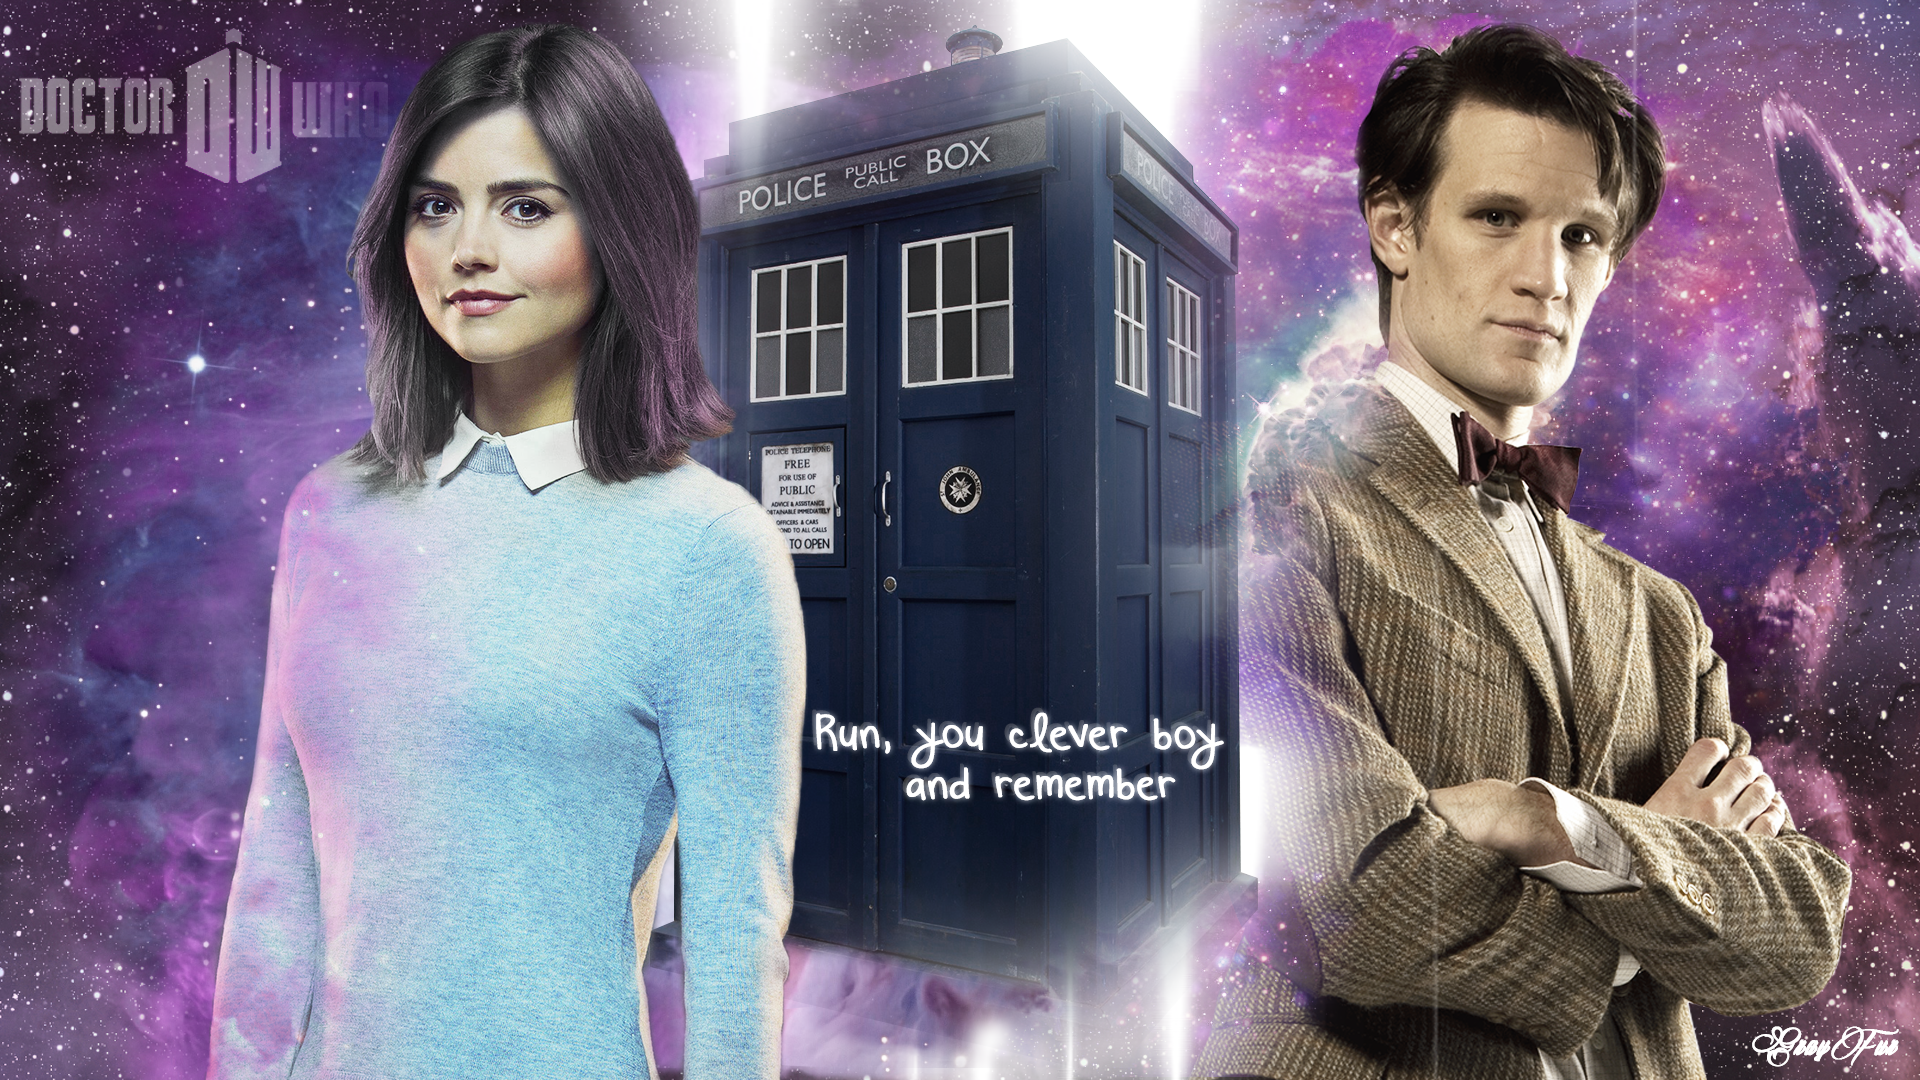 Doctor Who Wallpaper Full Hd With Clara Hd Wallpaper